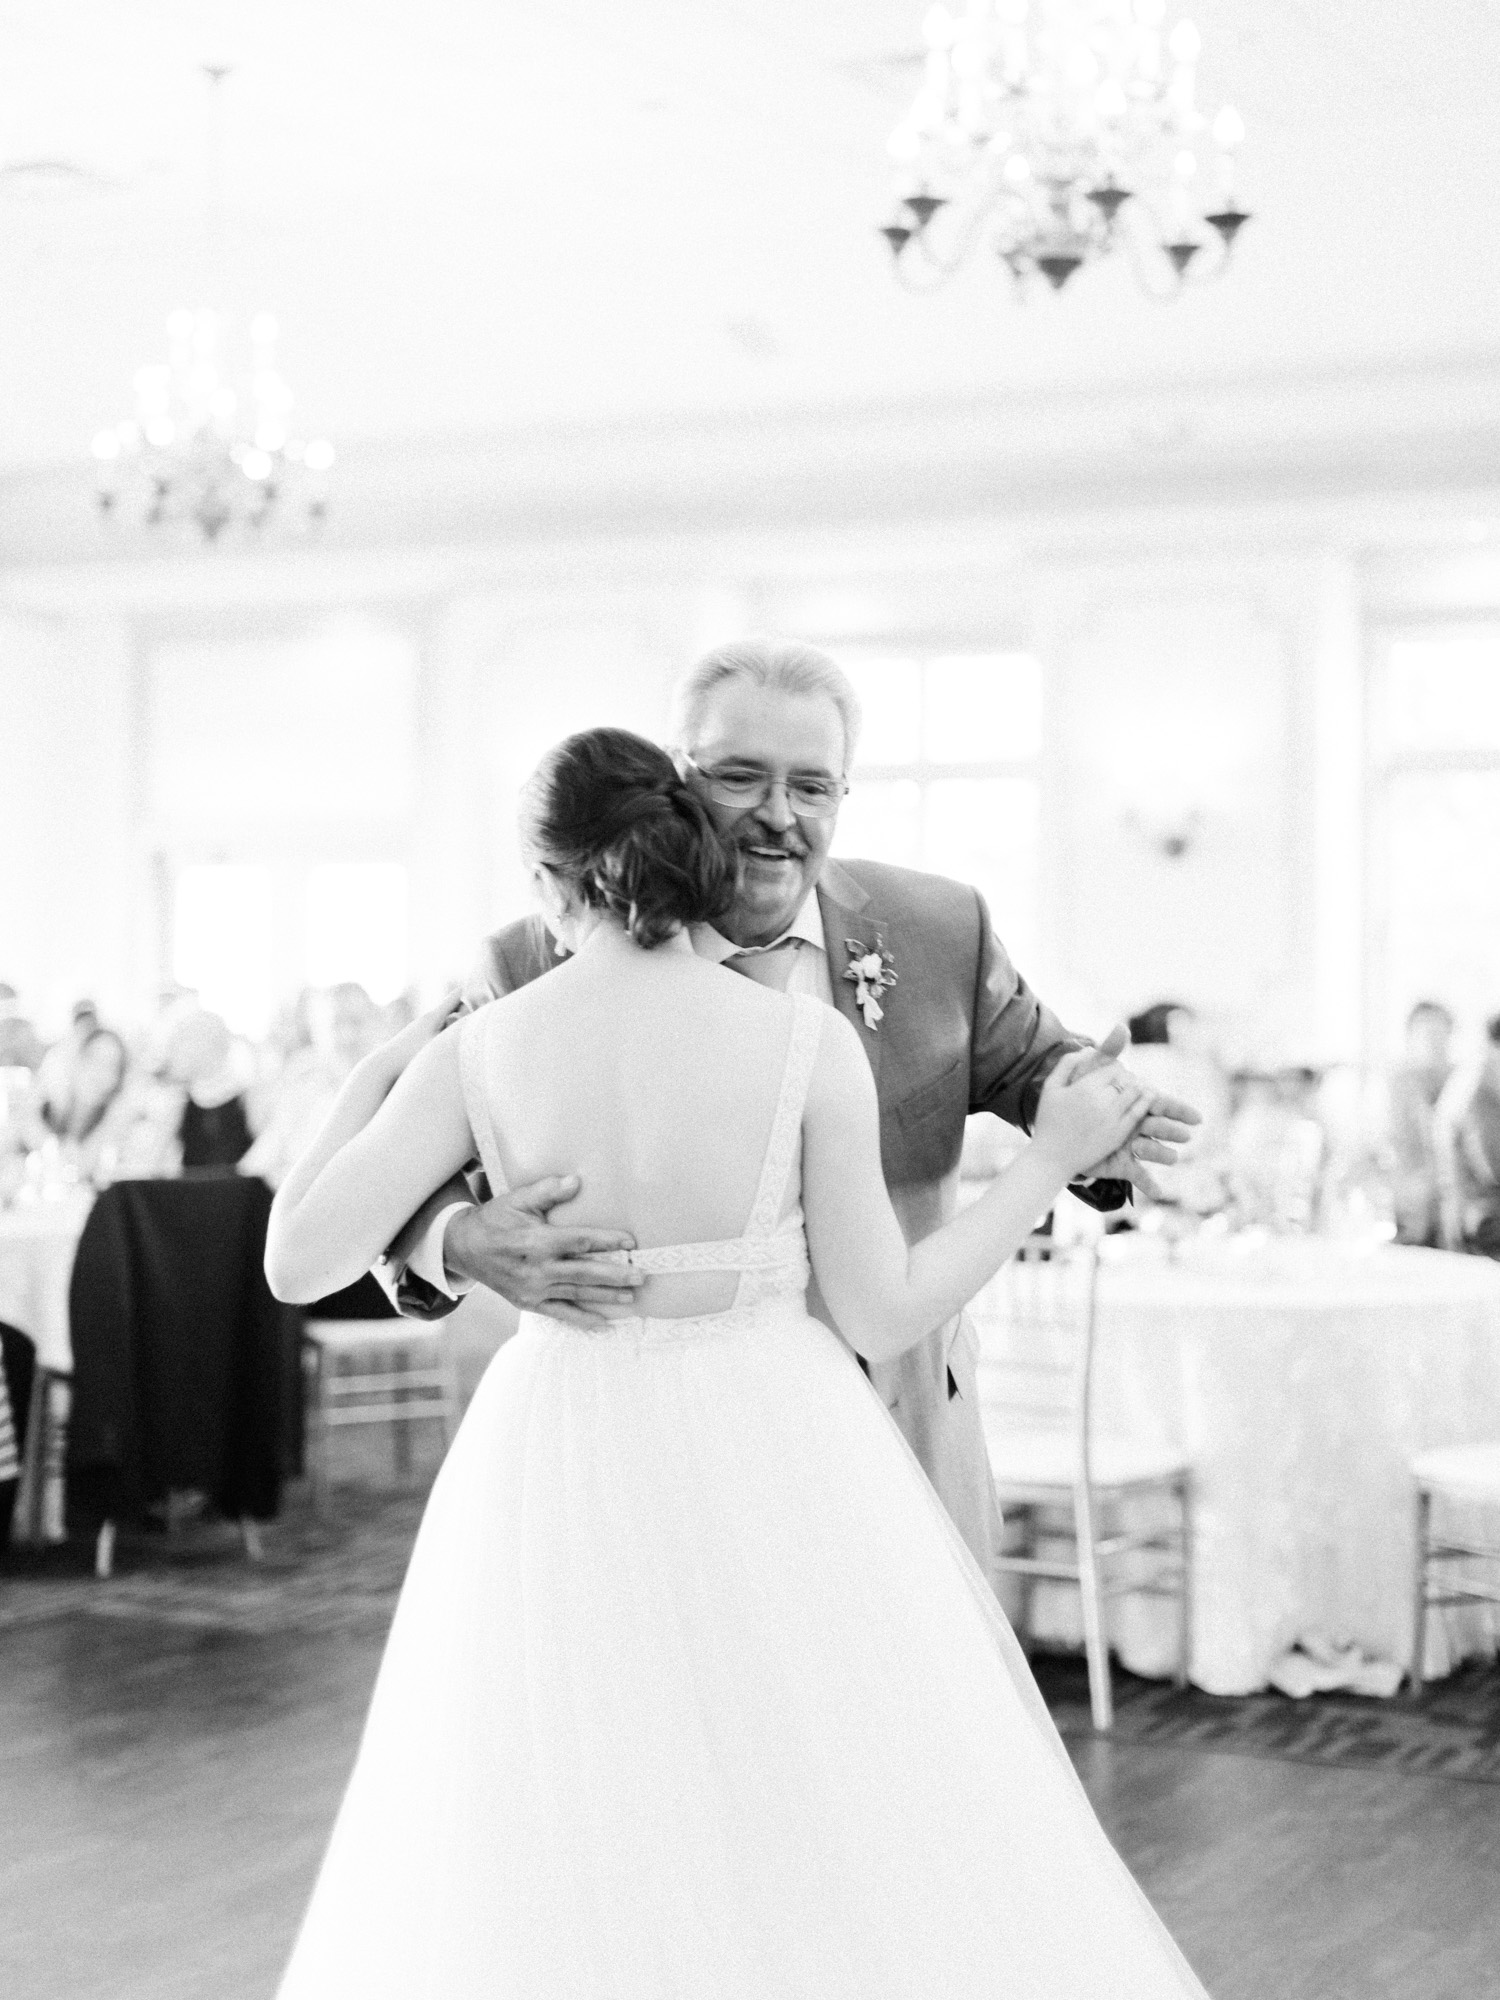 A brides father smiles as he shares a dance with her at The Polo Fields in Ann Arbor